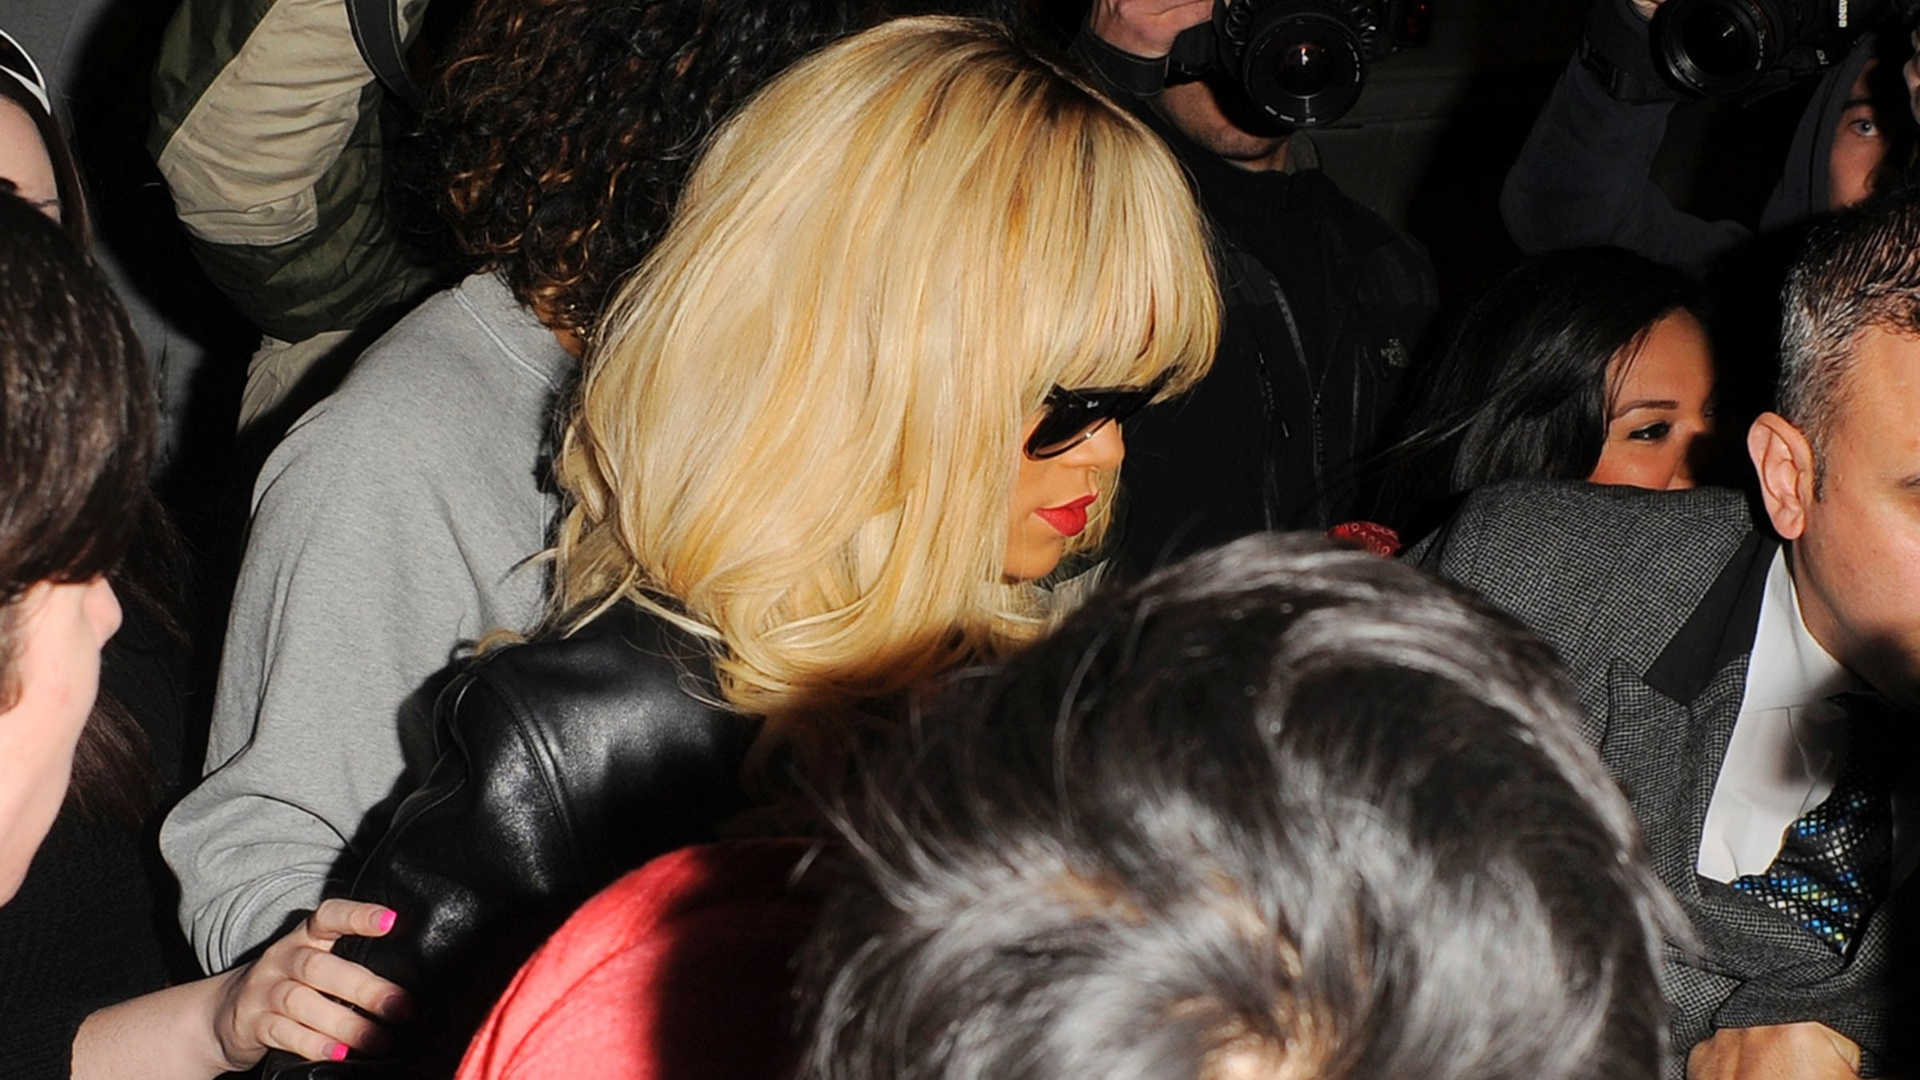 Rihanna causa tumulto no metr de Londres (27/3/12)